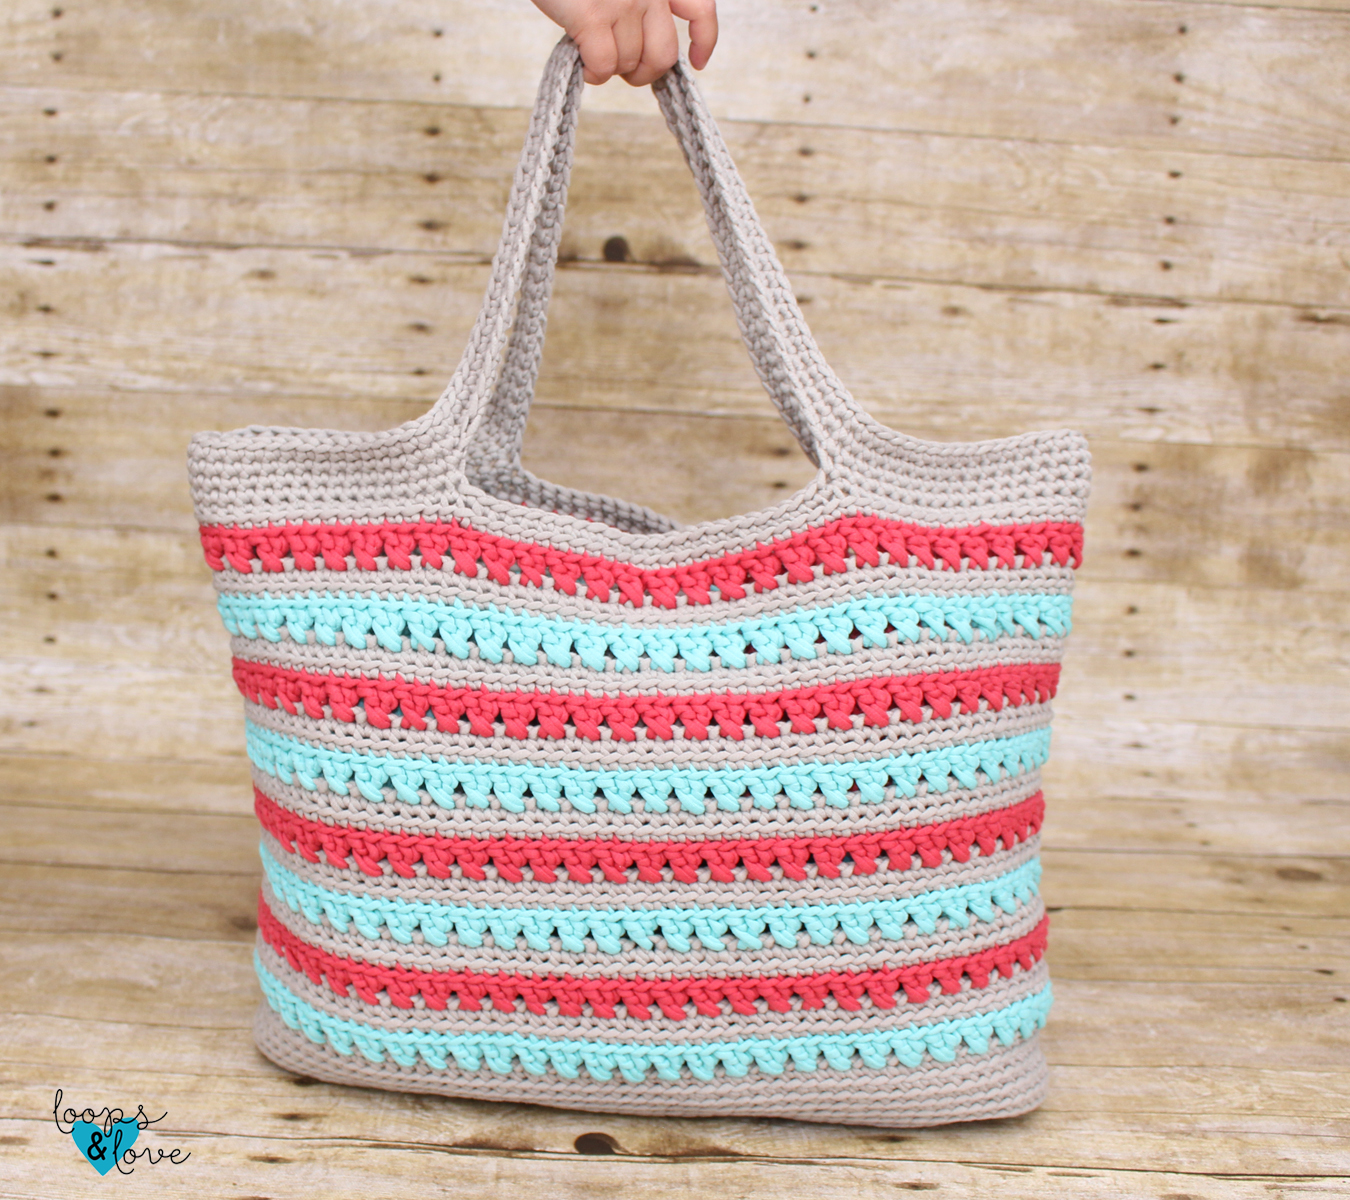 Crochet Market Bag Salmon or Turquoise Colors Ready to ship